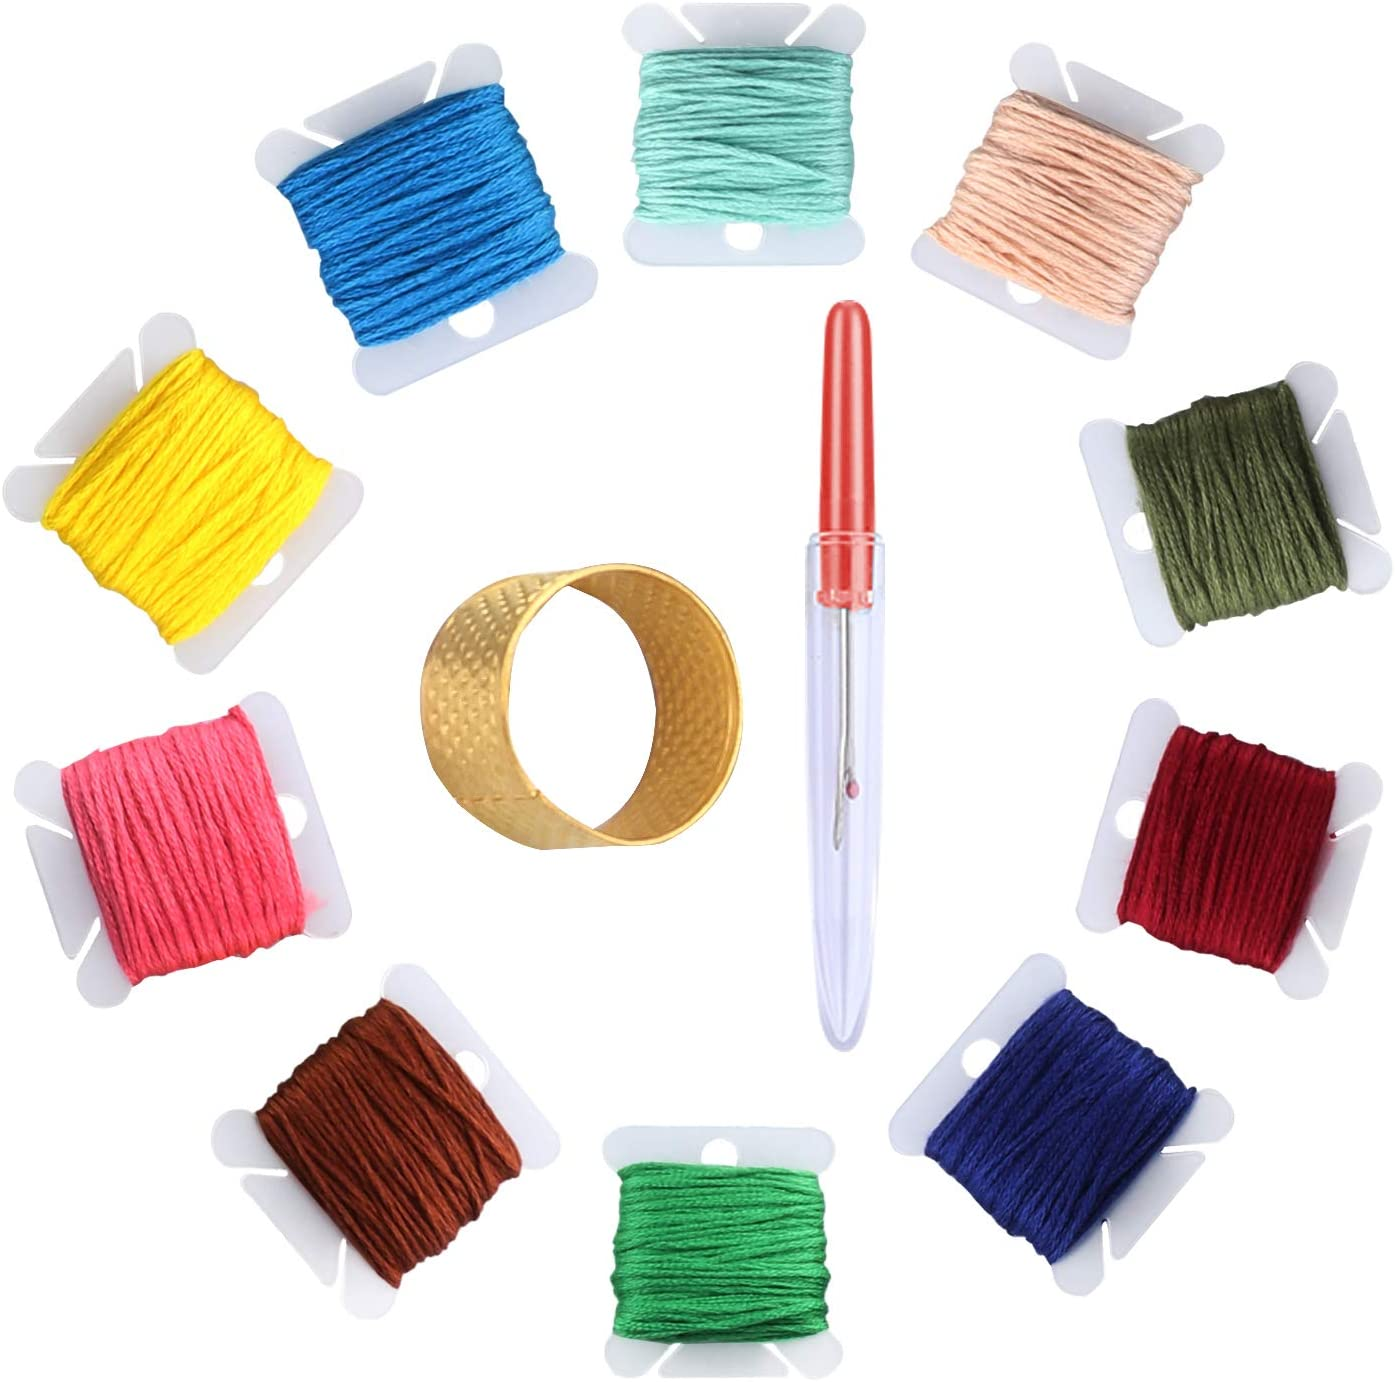 Friendship Bracelets Thread Crafts Floss Rainbow Color with Free Embroidery Needles. Cross Stitch Threads Embroidery Floss Oladwolf Embroidery Threads Floss 50 Pack